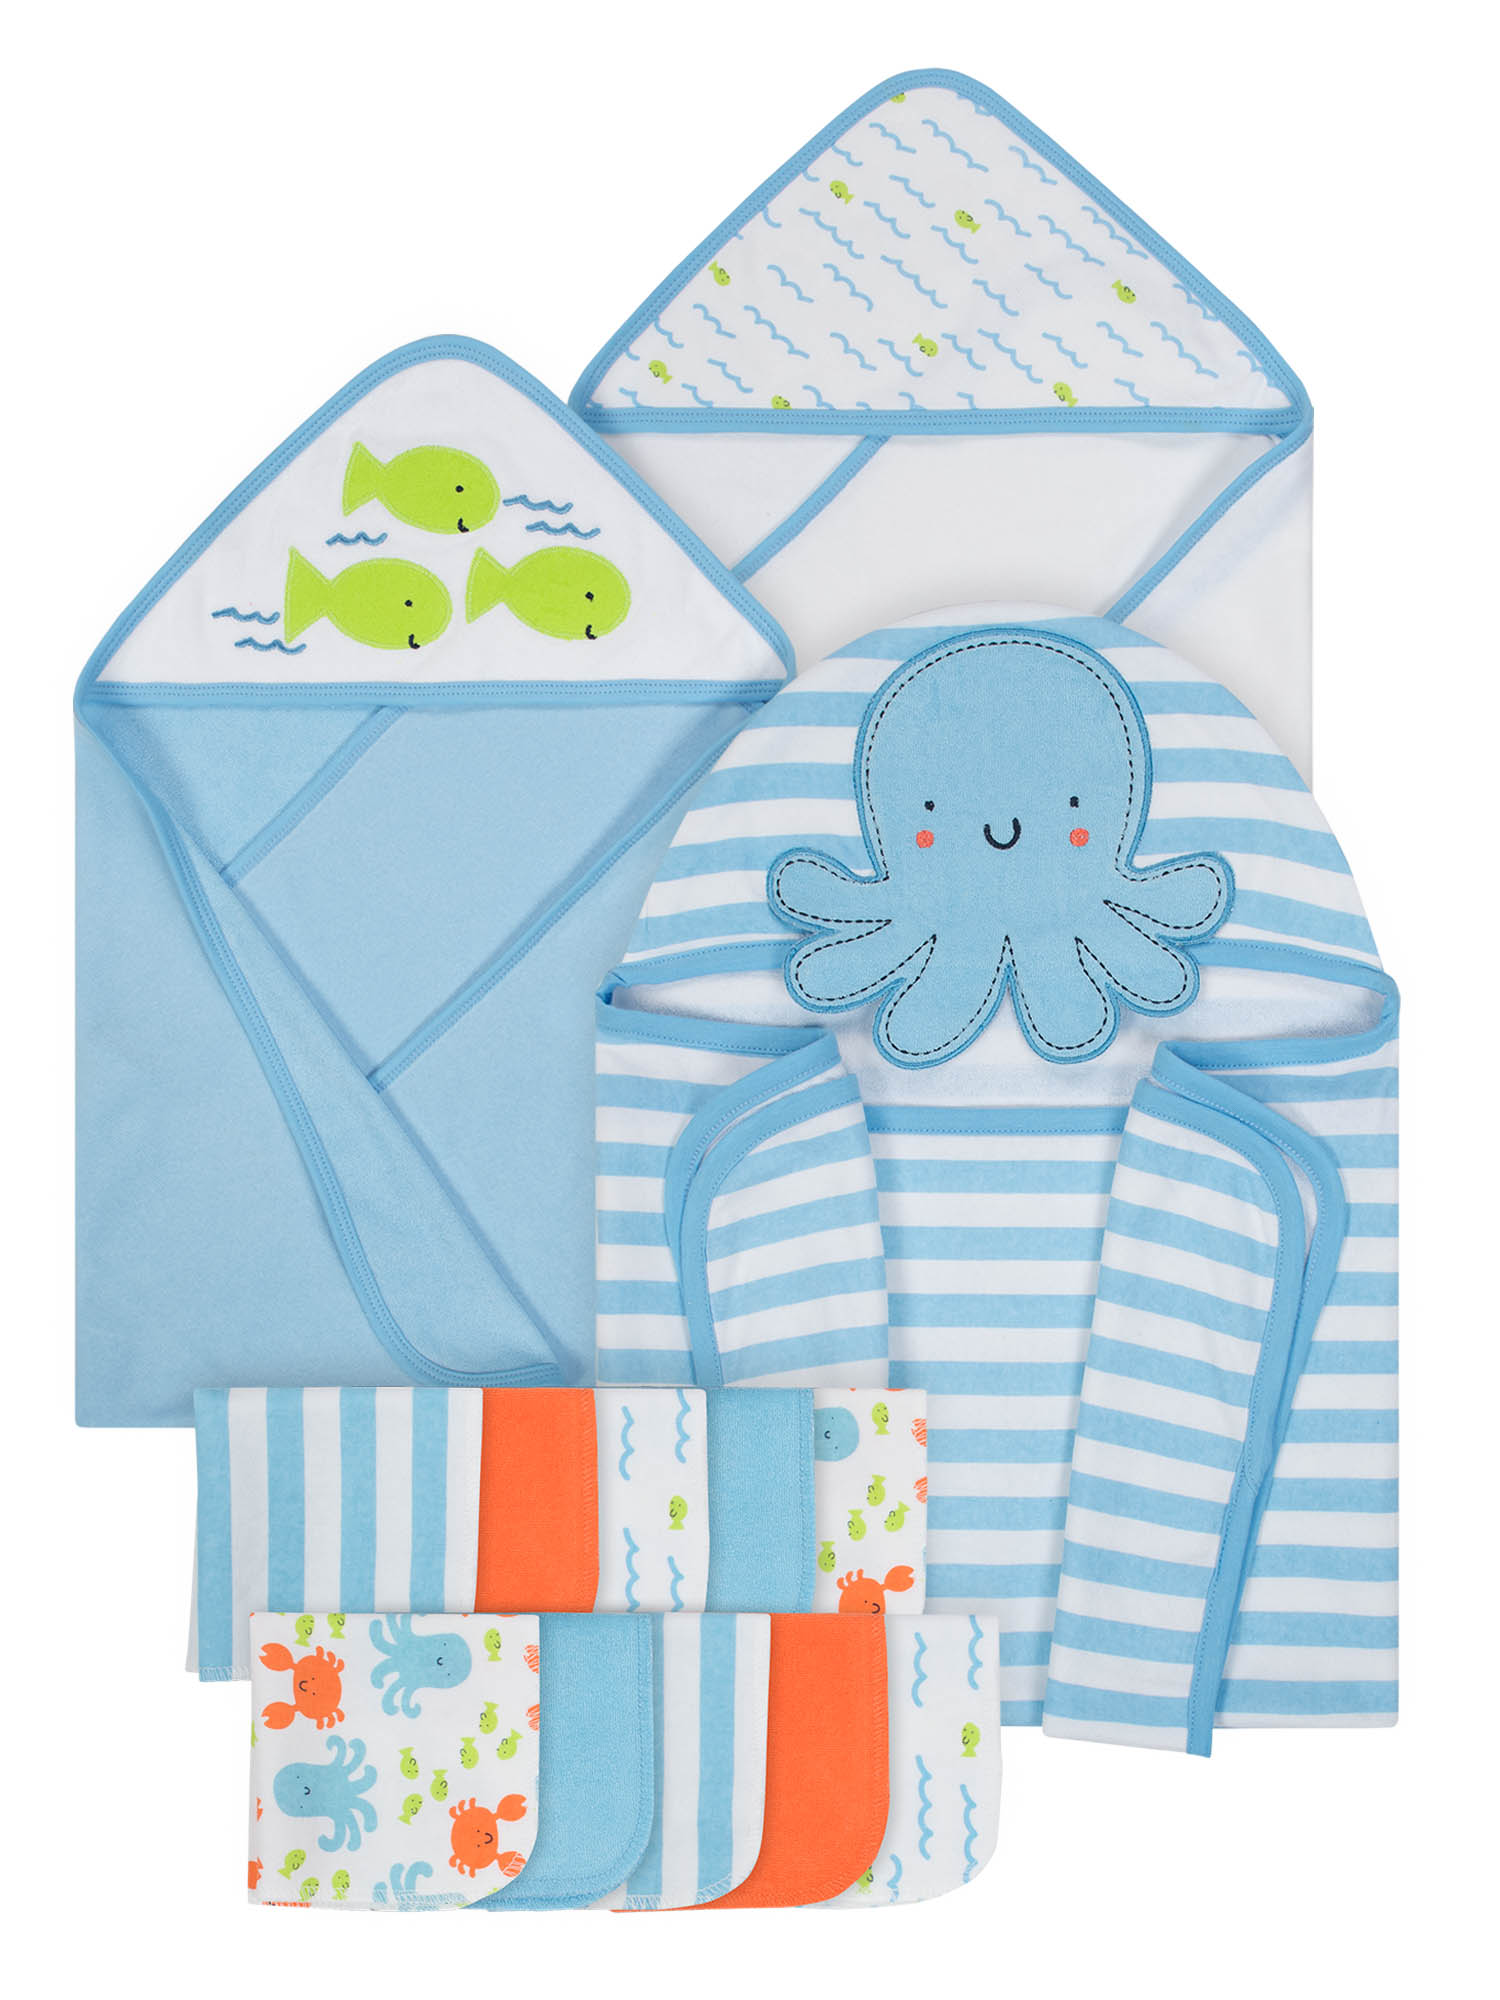 Gerber Baby Boy Hooded Bath Wrap, Hooded Towels & Washcloth Set, 13pc by Gerber